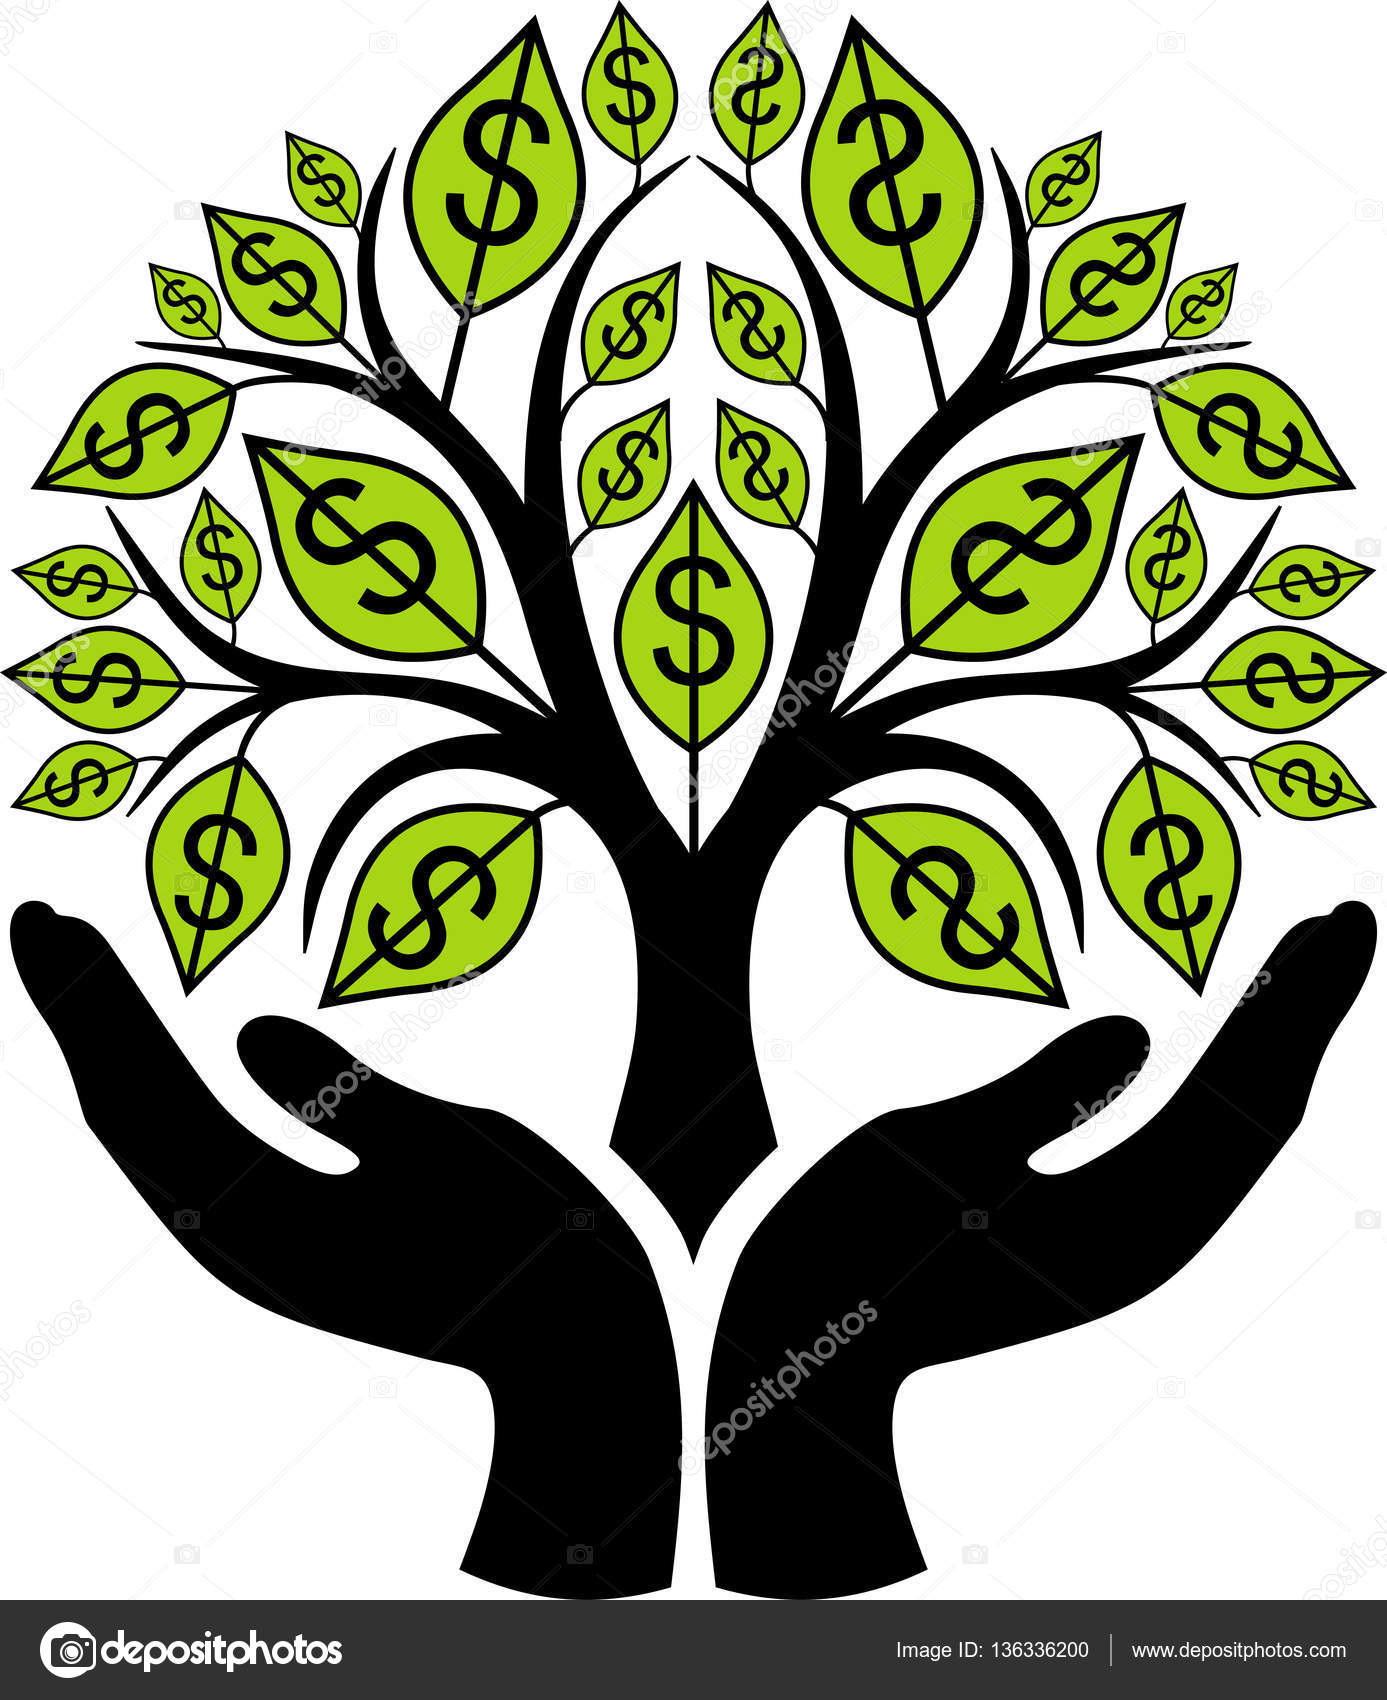 Money Tree Drawing at GetDrawings.com | Free for personal use Money ...